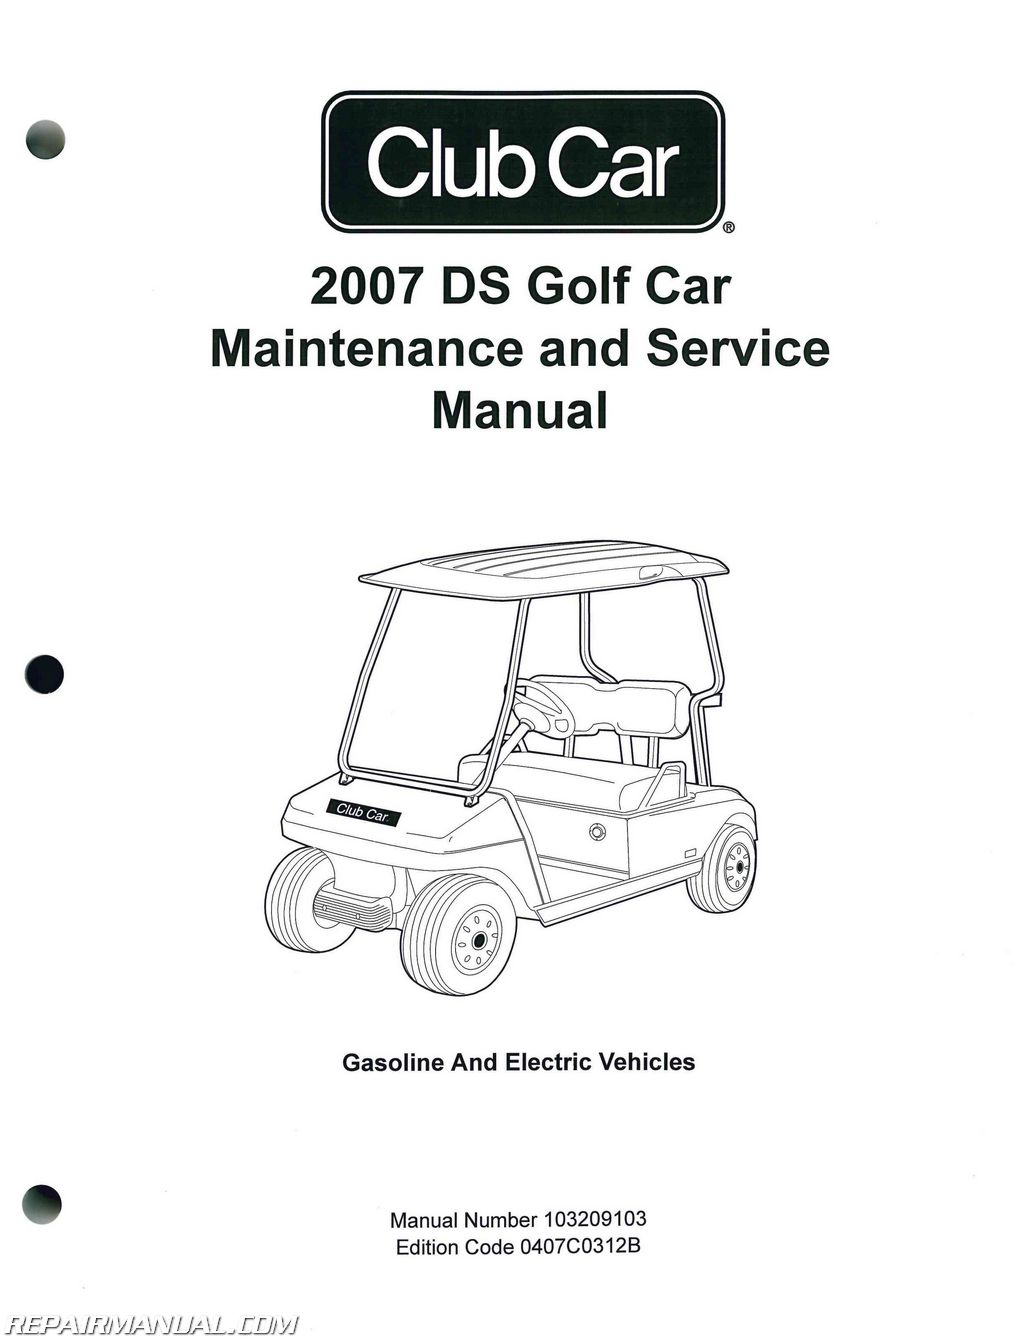 hight resolution of 02 club car 48 volt ds golf cart wiring diagram wiring library rh 86 bloxhuette de